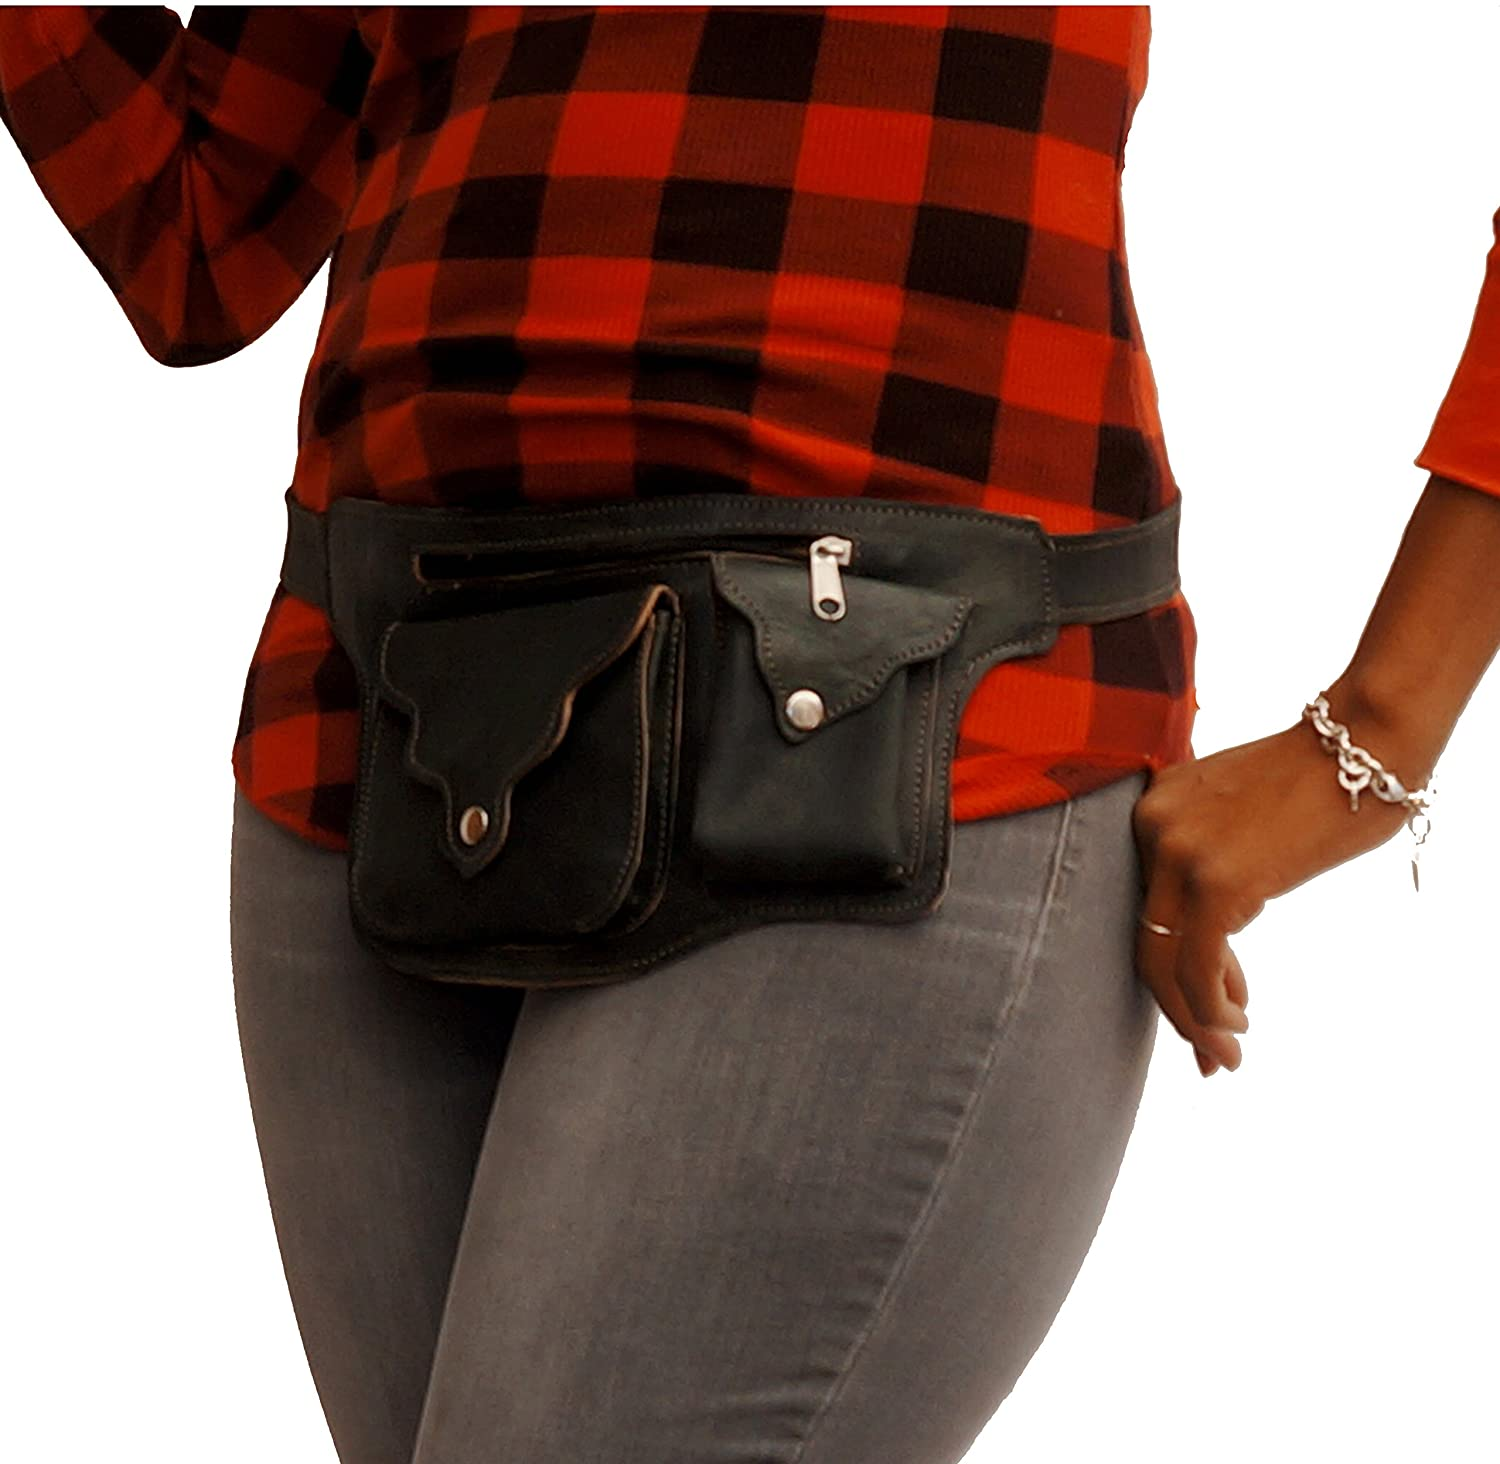 Leather Fanny Pack | Fashionable Handmade Hip Bag- Bum Belt By The Urban Turbanista